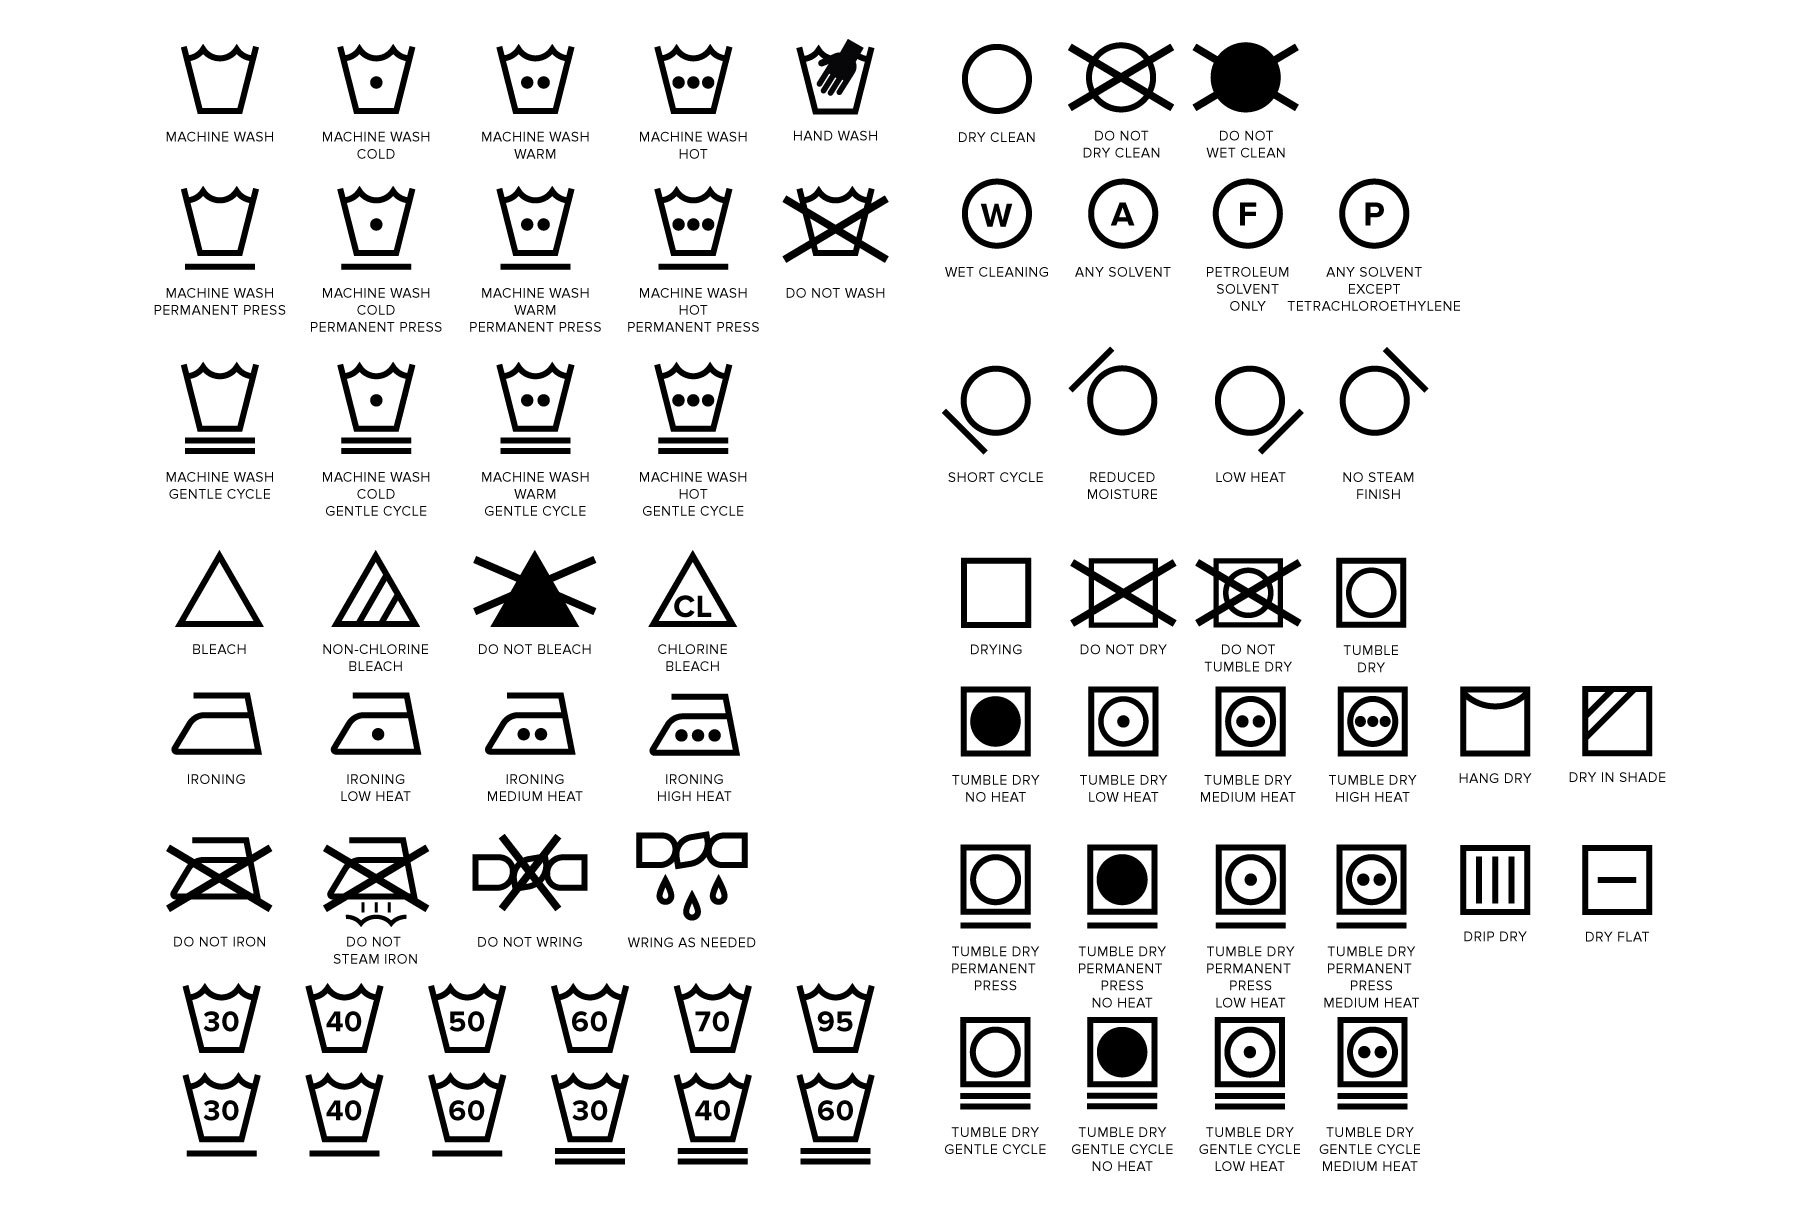 Laundry Care Symbol Icons Set example image 2